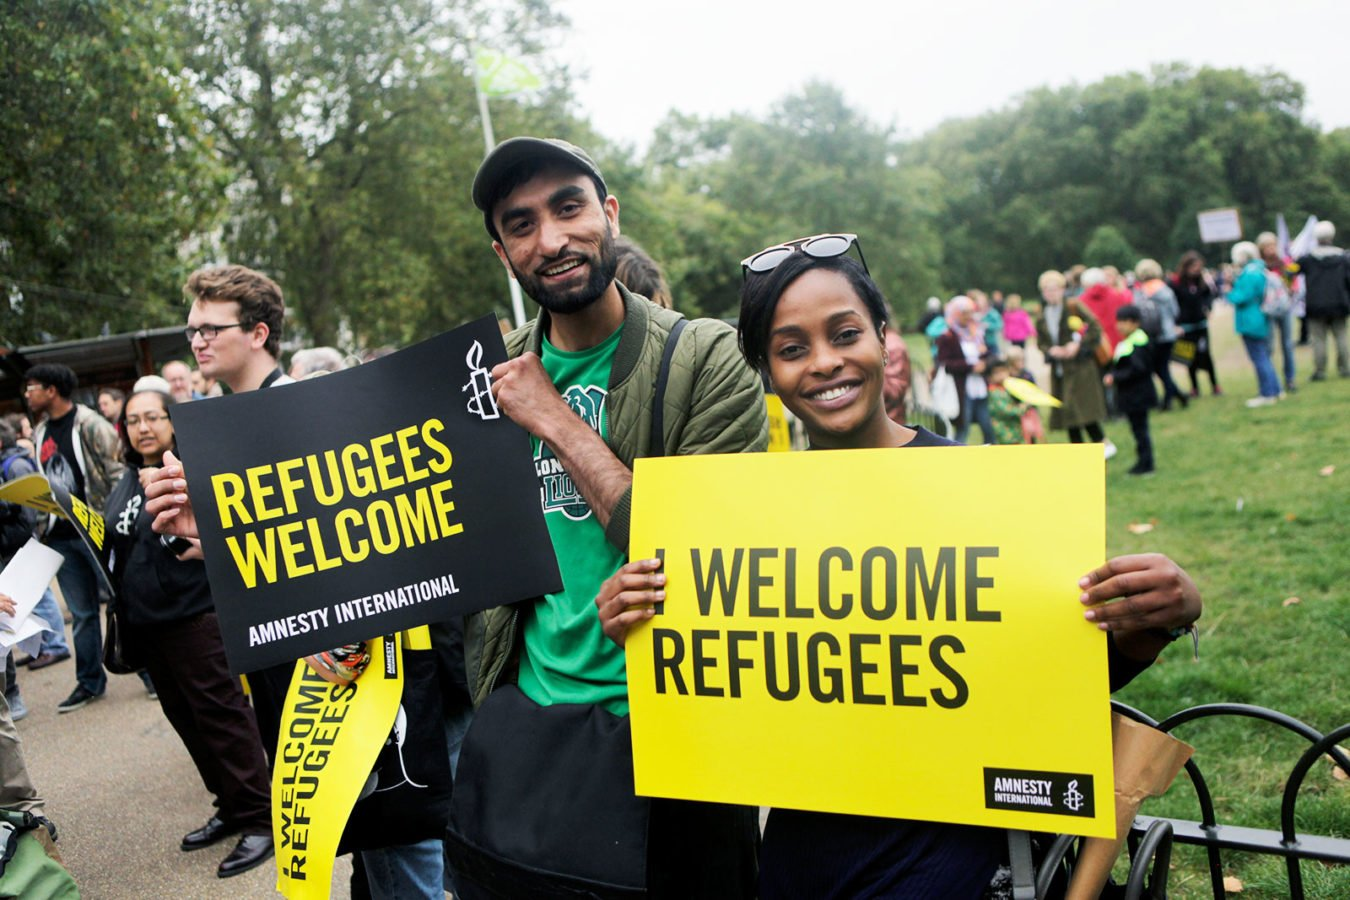 A man and woman at a rally in London to welcome refugees. They smile into the camera holding signs bearing the Amnesty International logo that say 'Refugees welcome'.